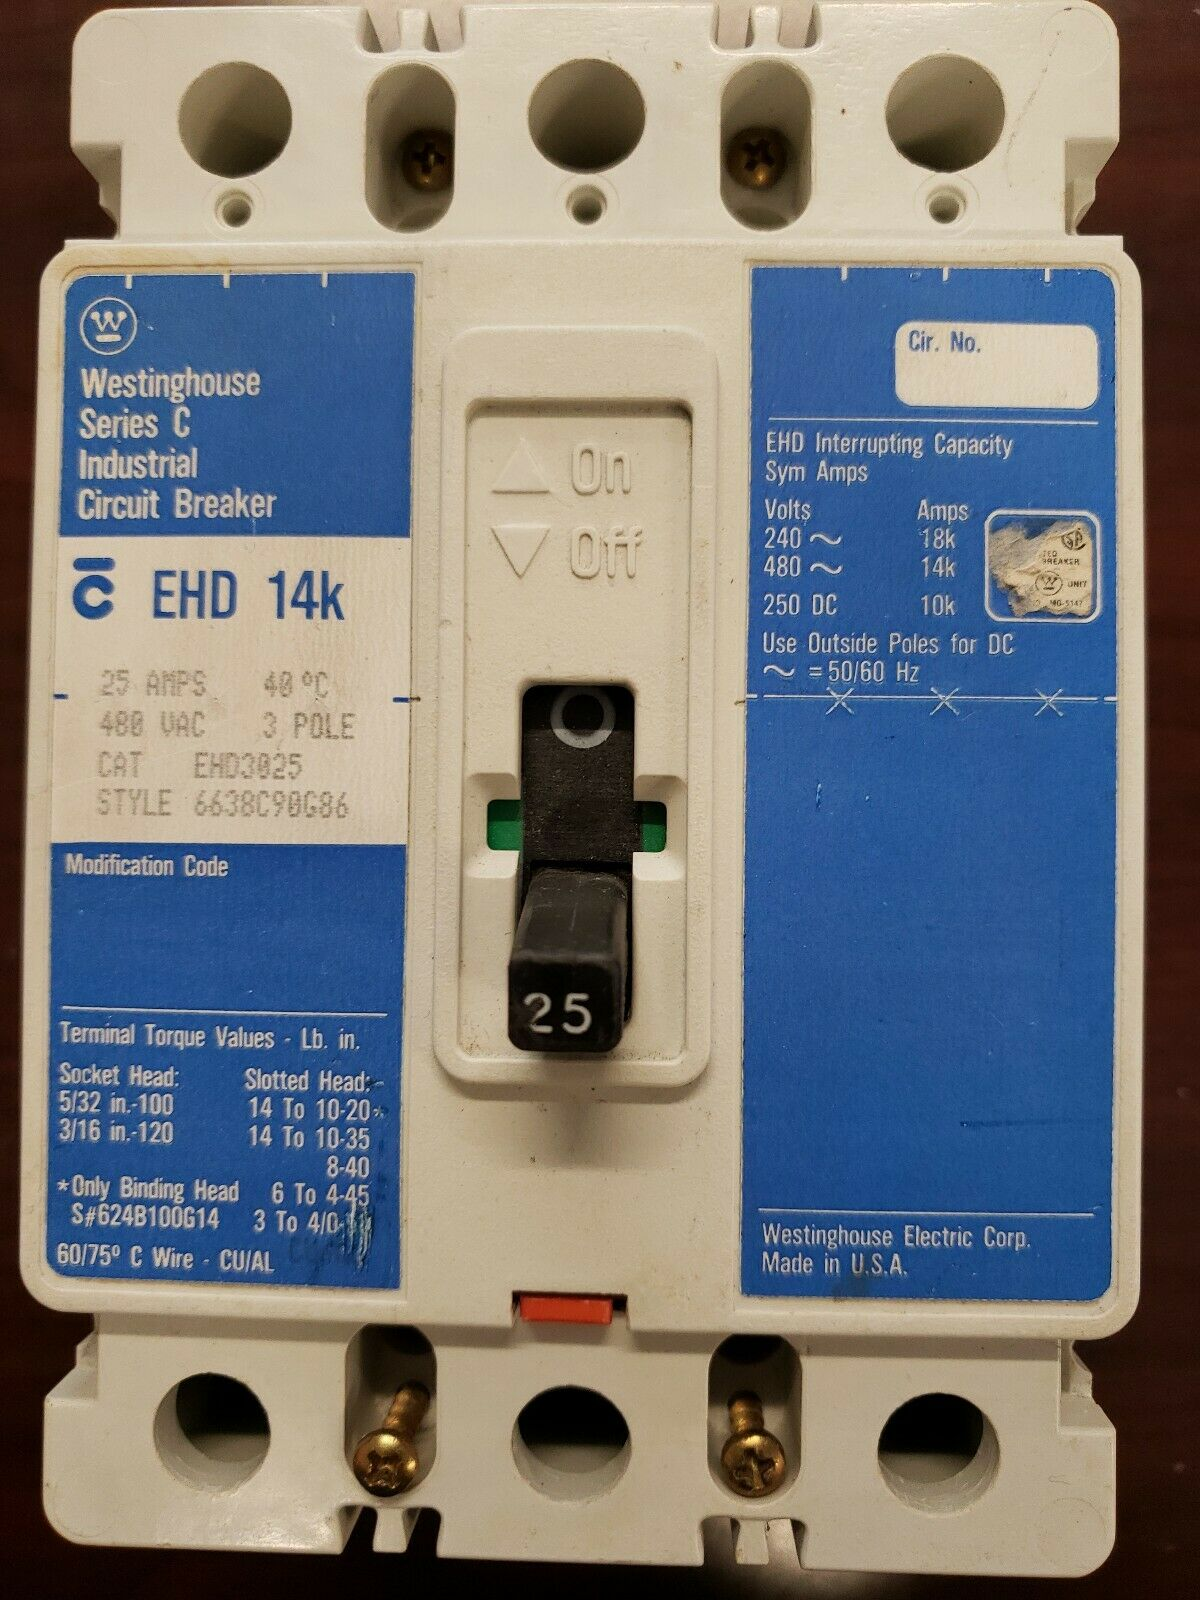 EHD3025 Westinghouse 25AMP Industrial Circuit Breaker 3 Pole 25A 480VAC